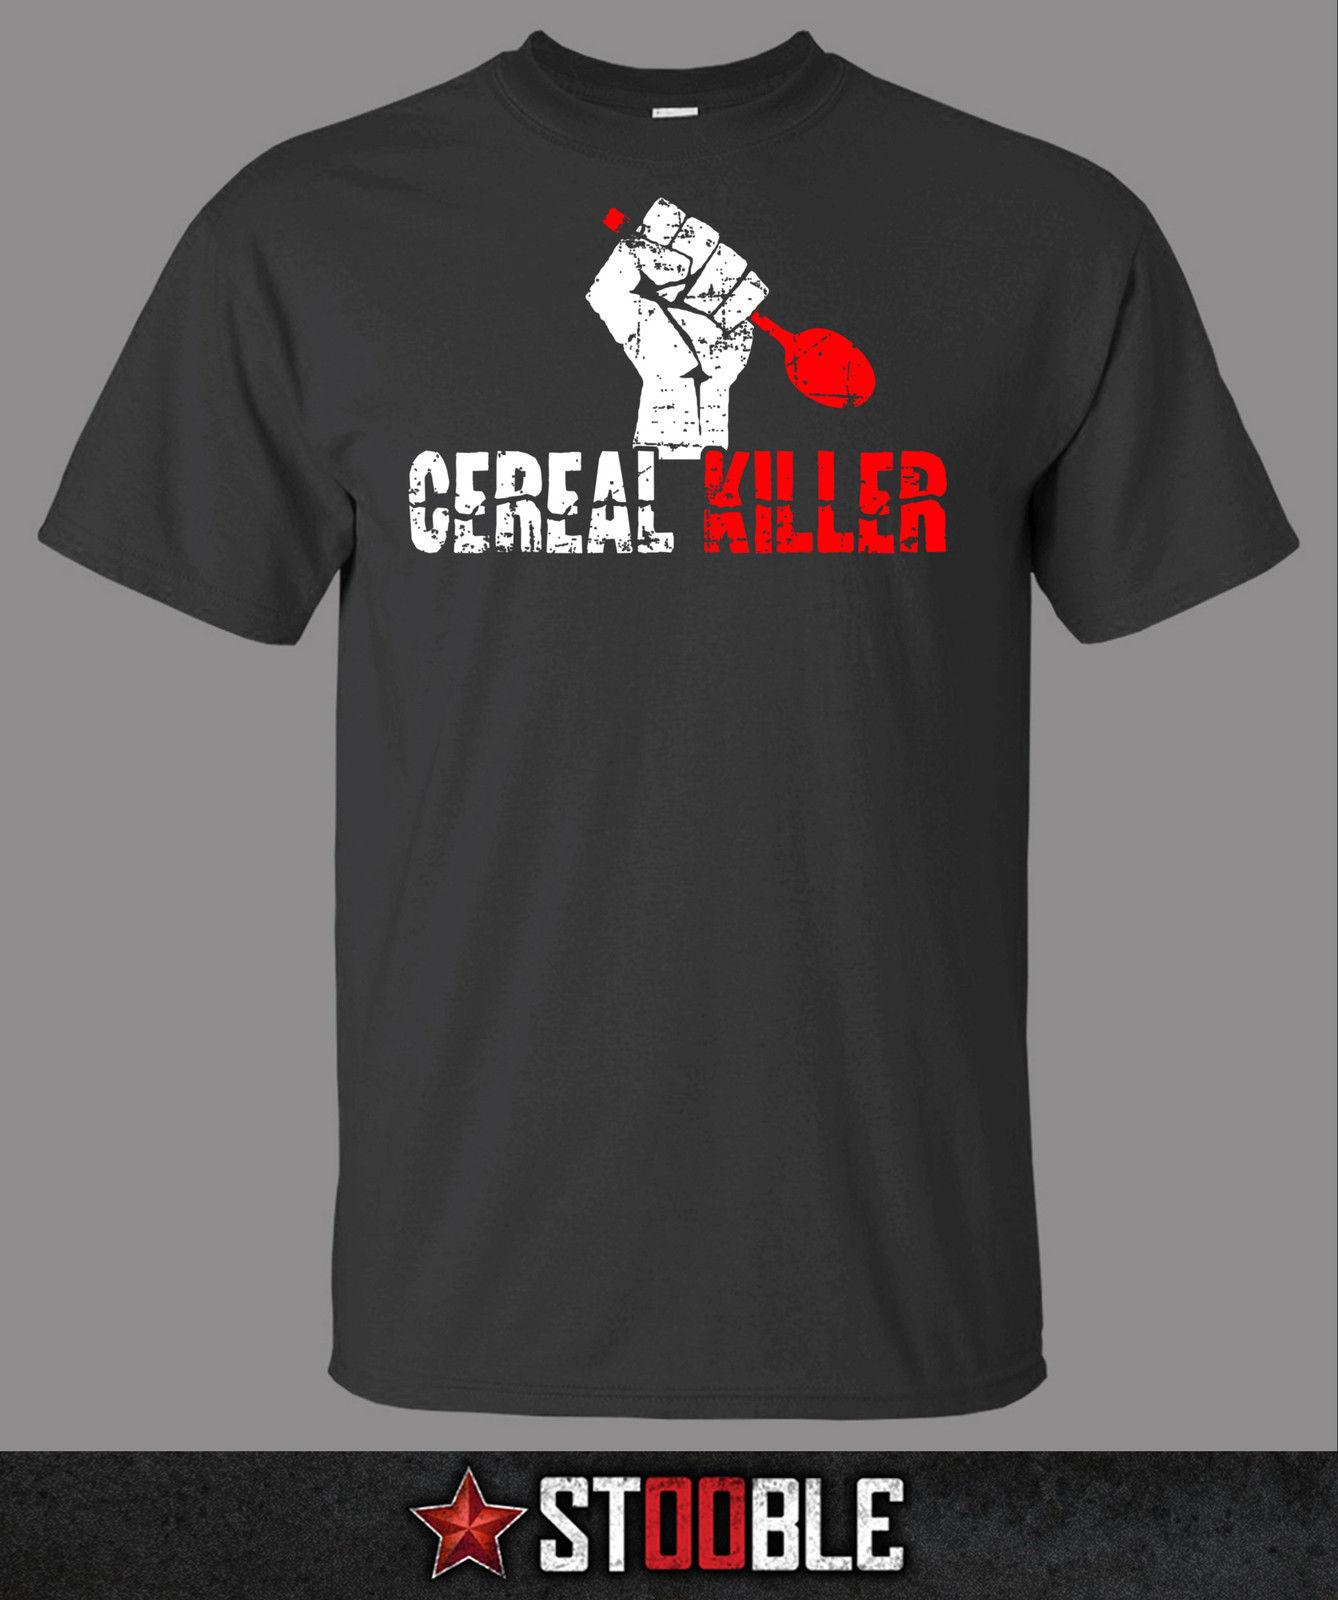 19379794 Cereal Killer T Shirt New Funny Brand T Shirt Men 2018 New Fashion Printed  Fashionable Round 100% Cotton Casual Short Awesome T Shirt Design Shirt And  ...